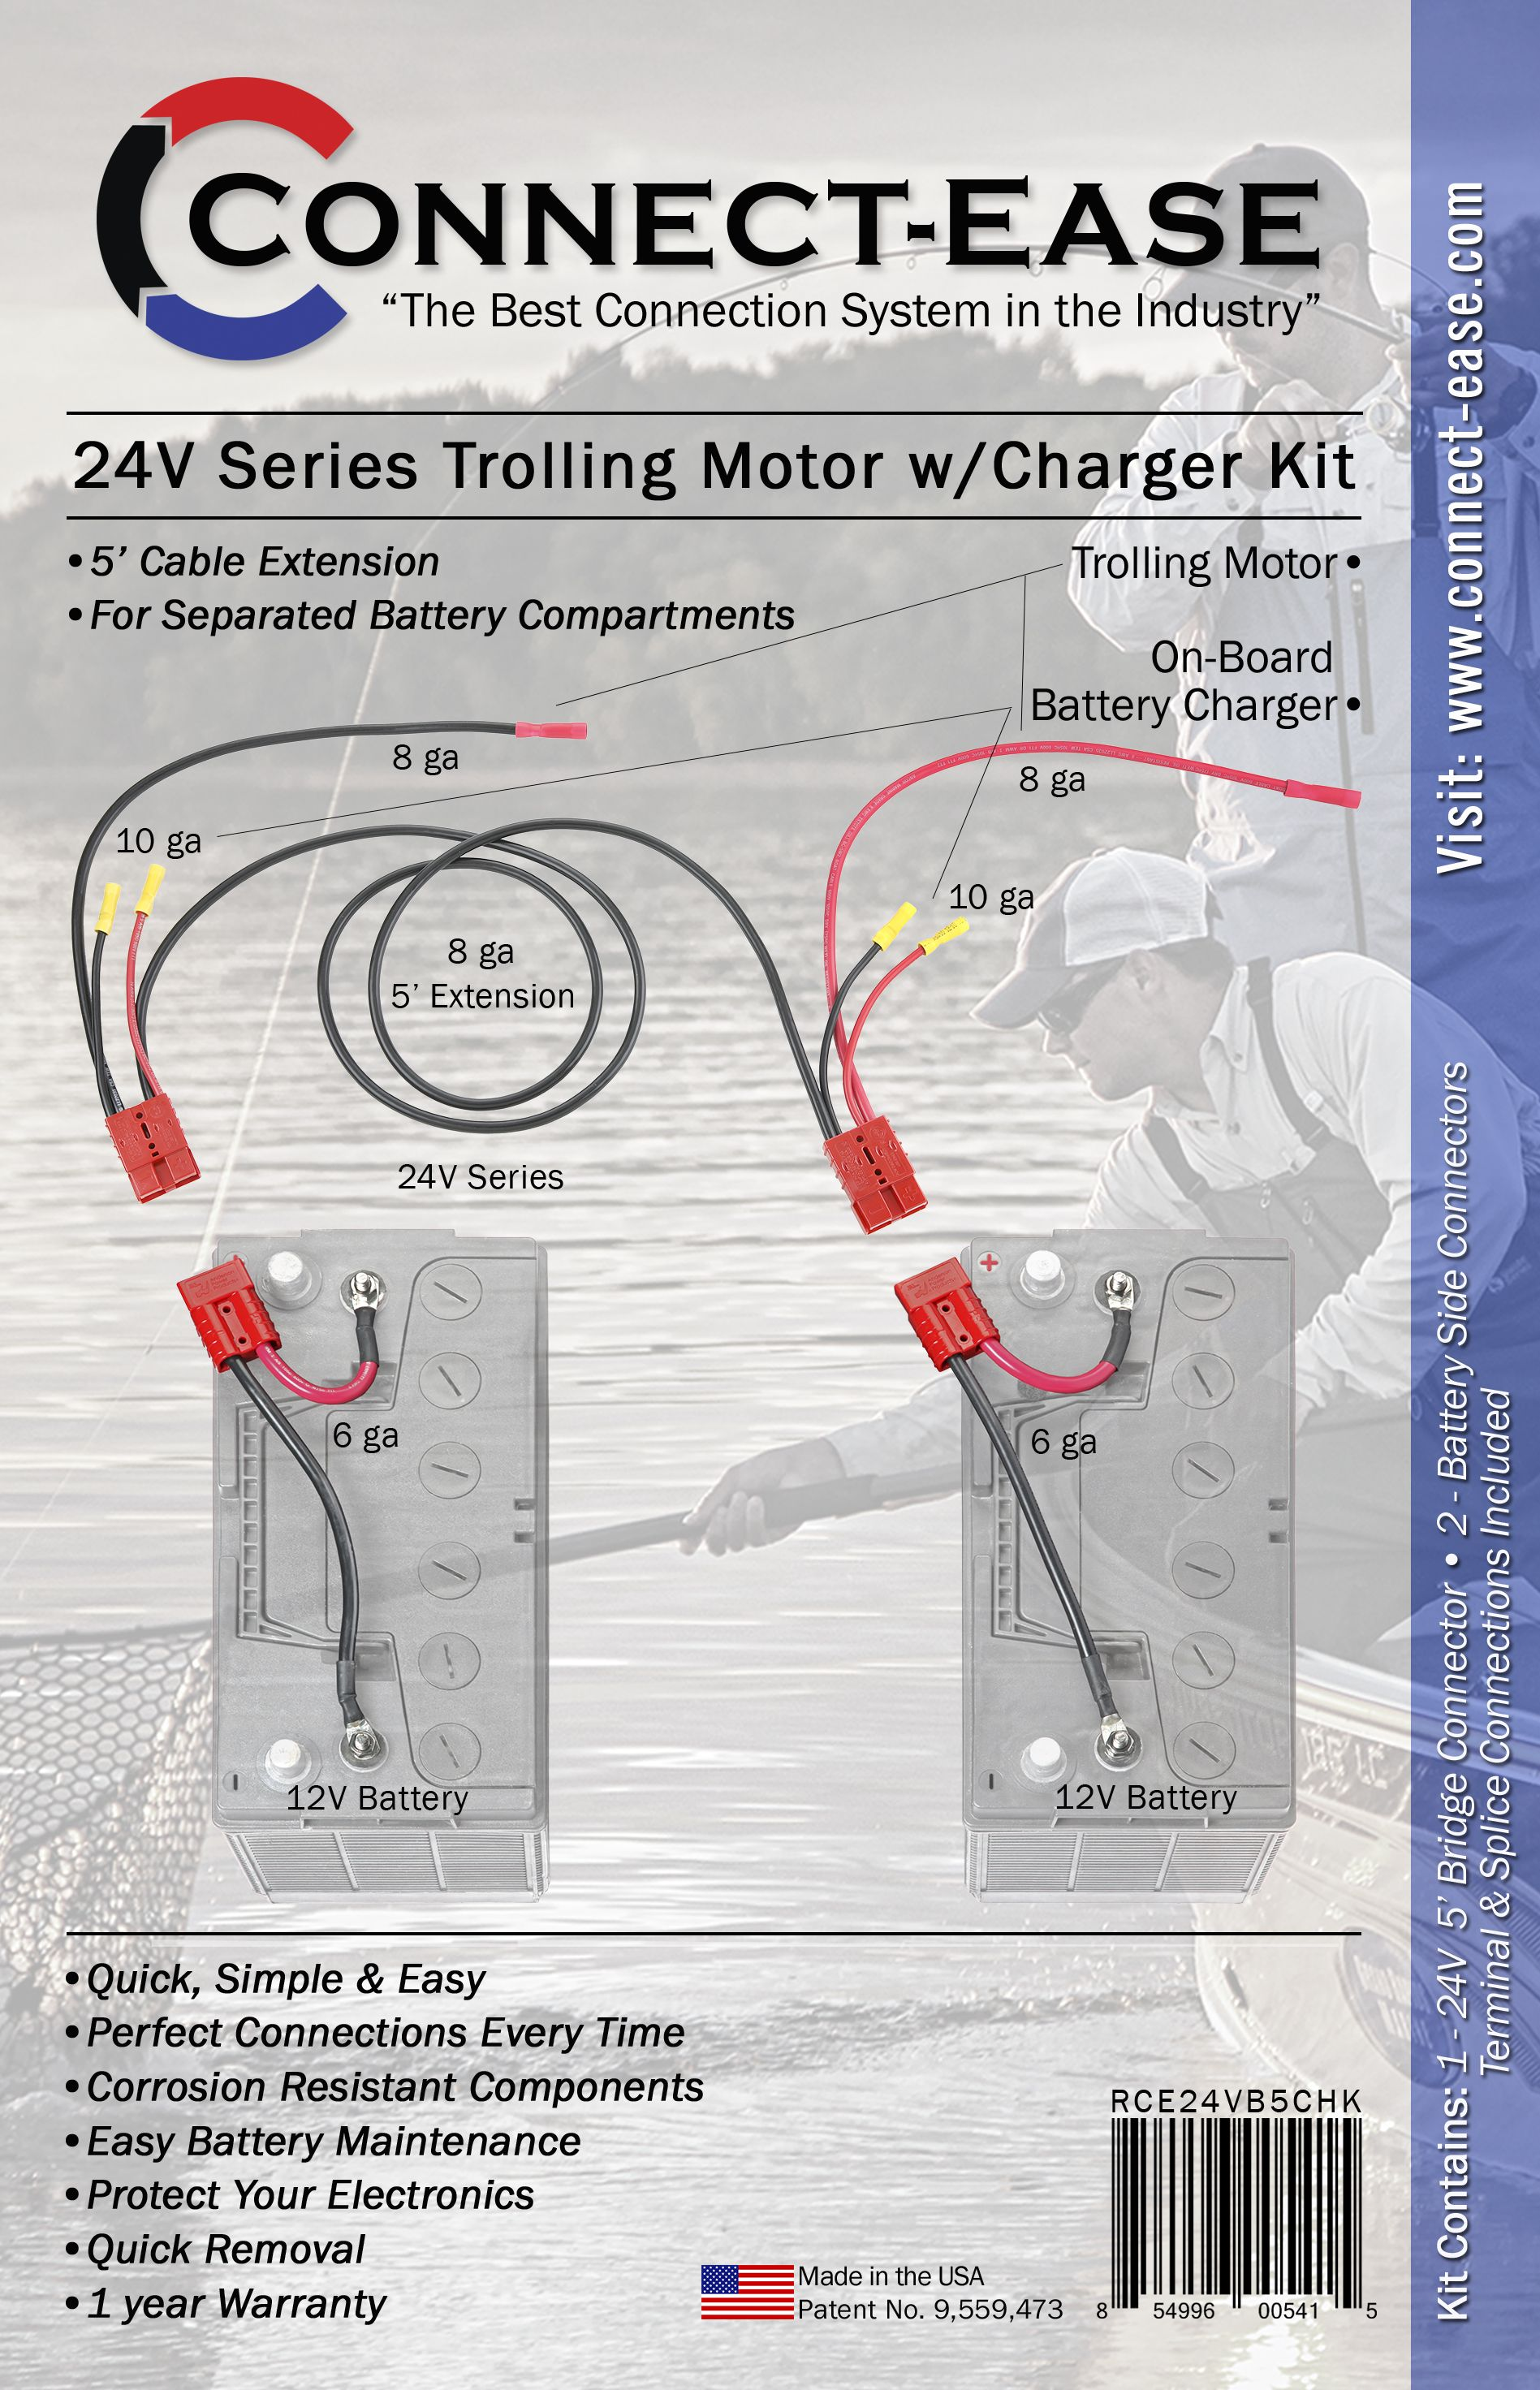 The Perfect Solution For Boats With Separated Batteries Under The Consoles Or In The Rear Deck Trolling Motor Boat Wiring Aluminum Fishing Boats